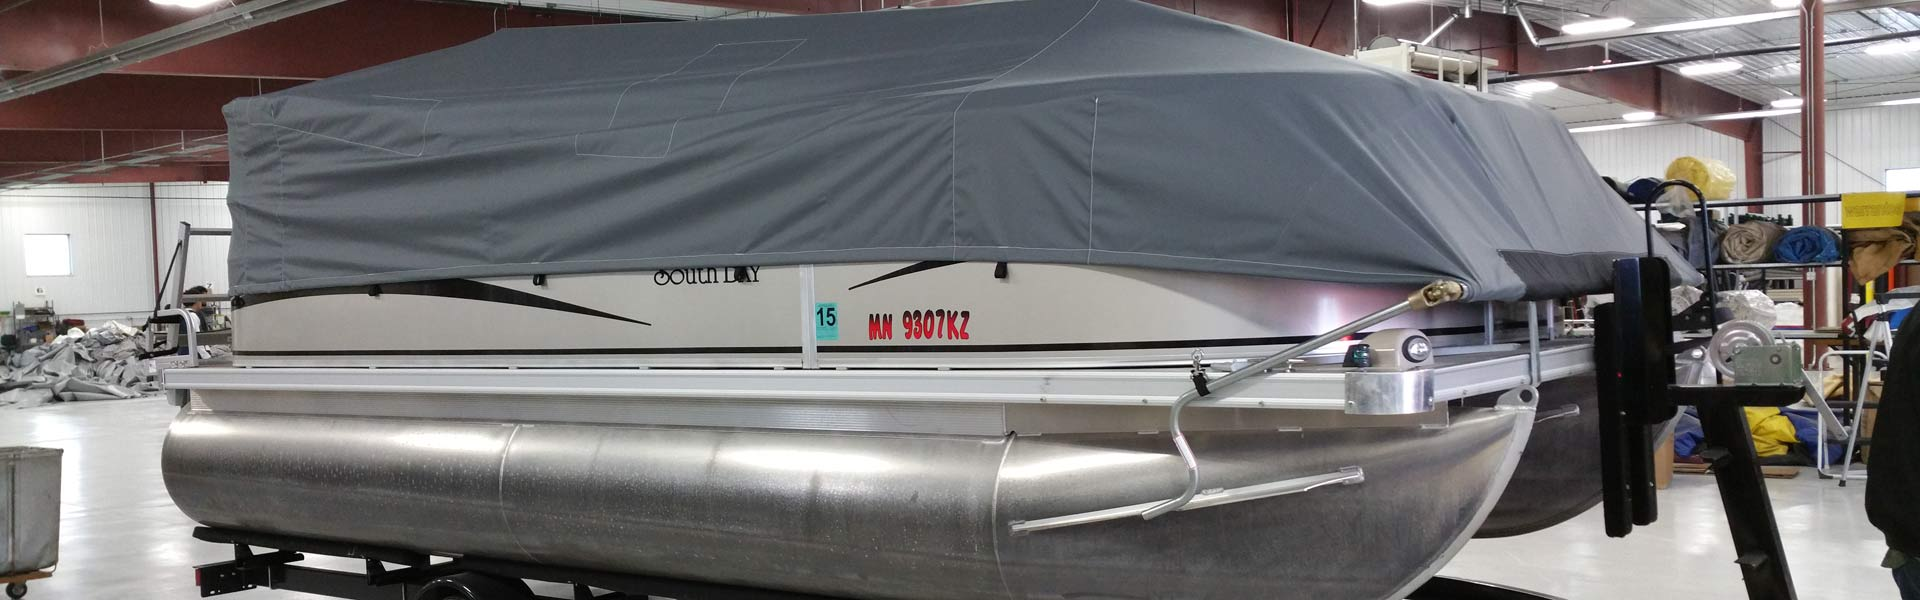 Sidewinder Pontoon Cover